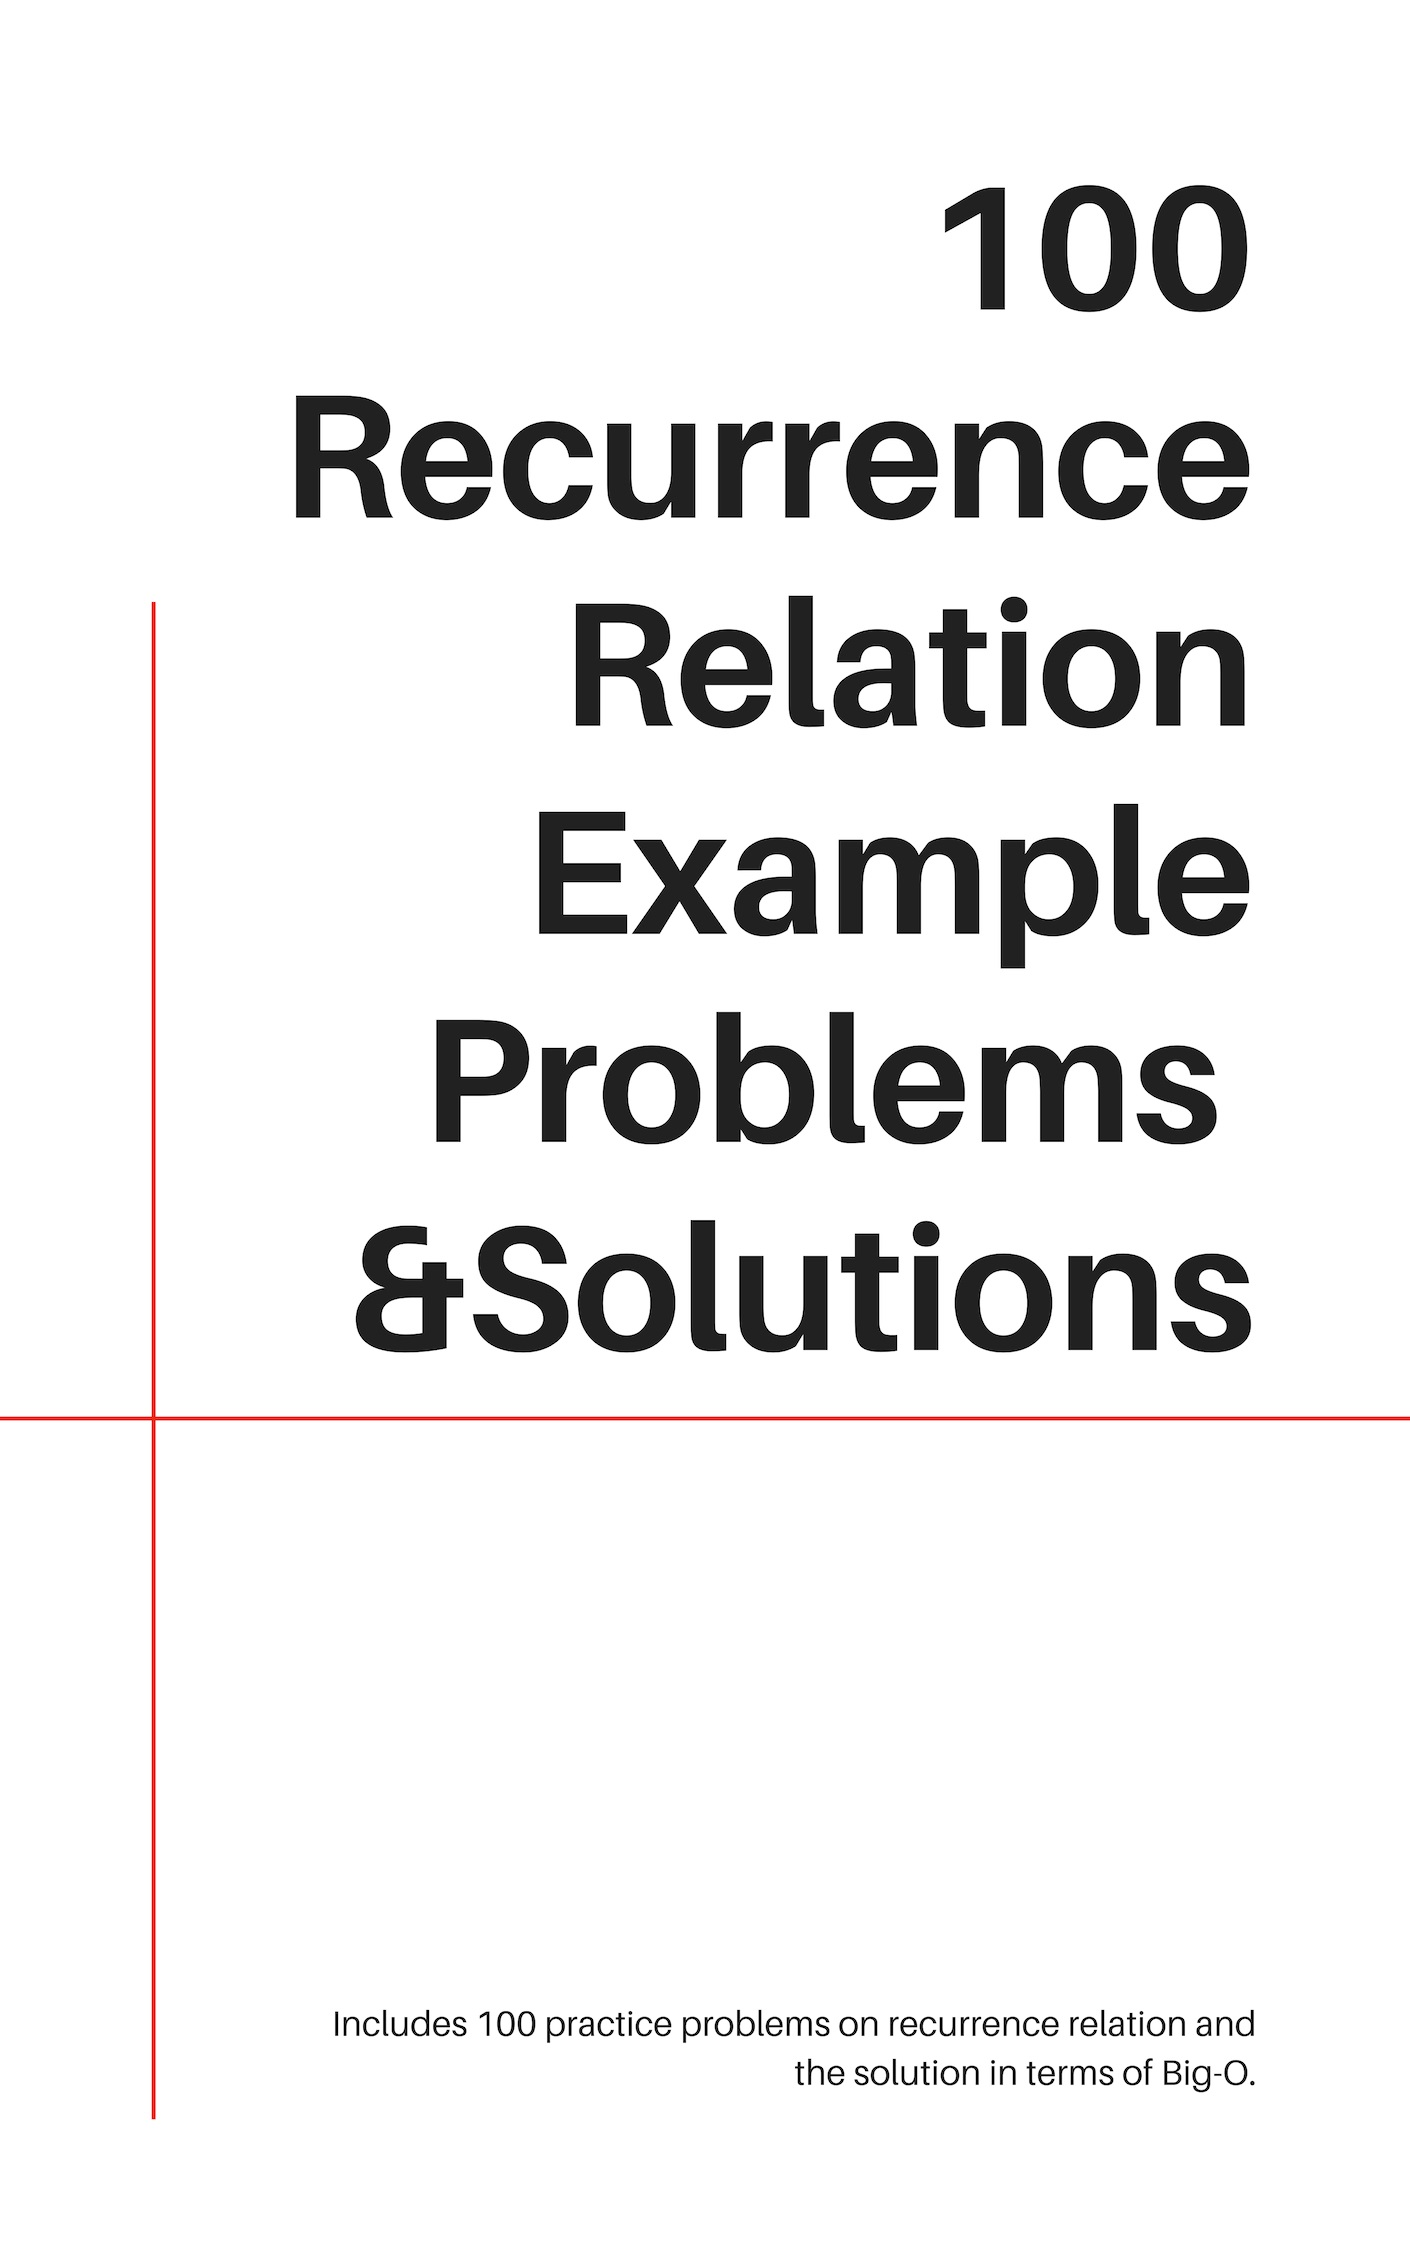 CS Recurrence Relations